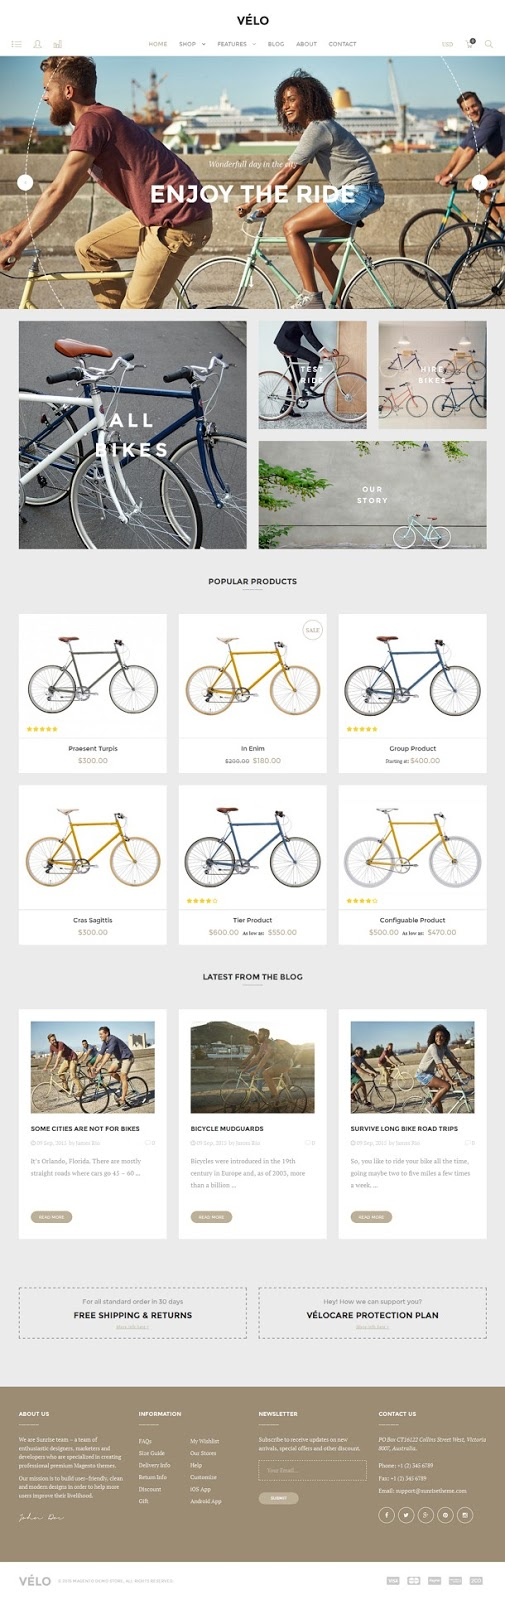 Velo Responsive Magento Theme for Bike Shops